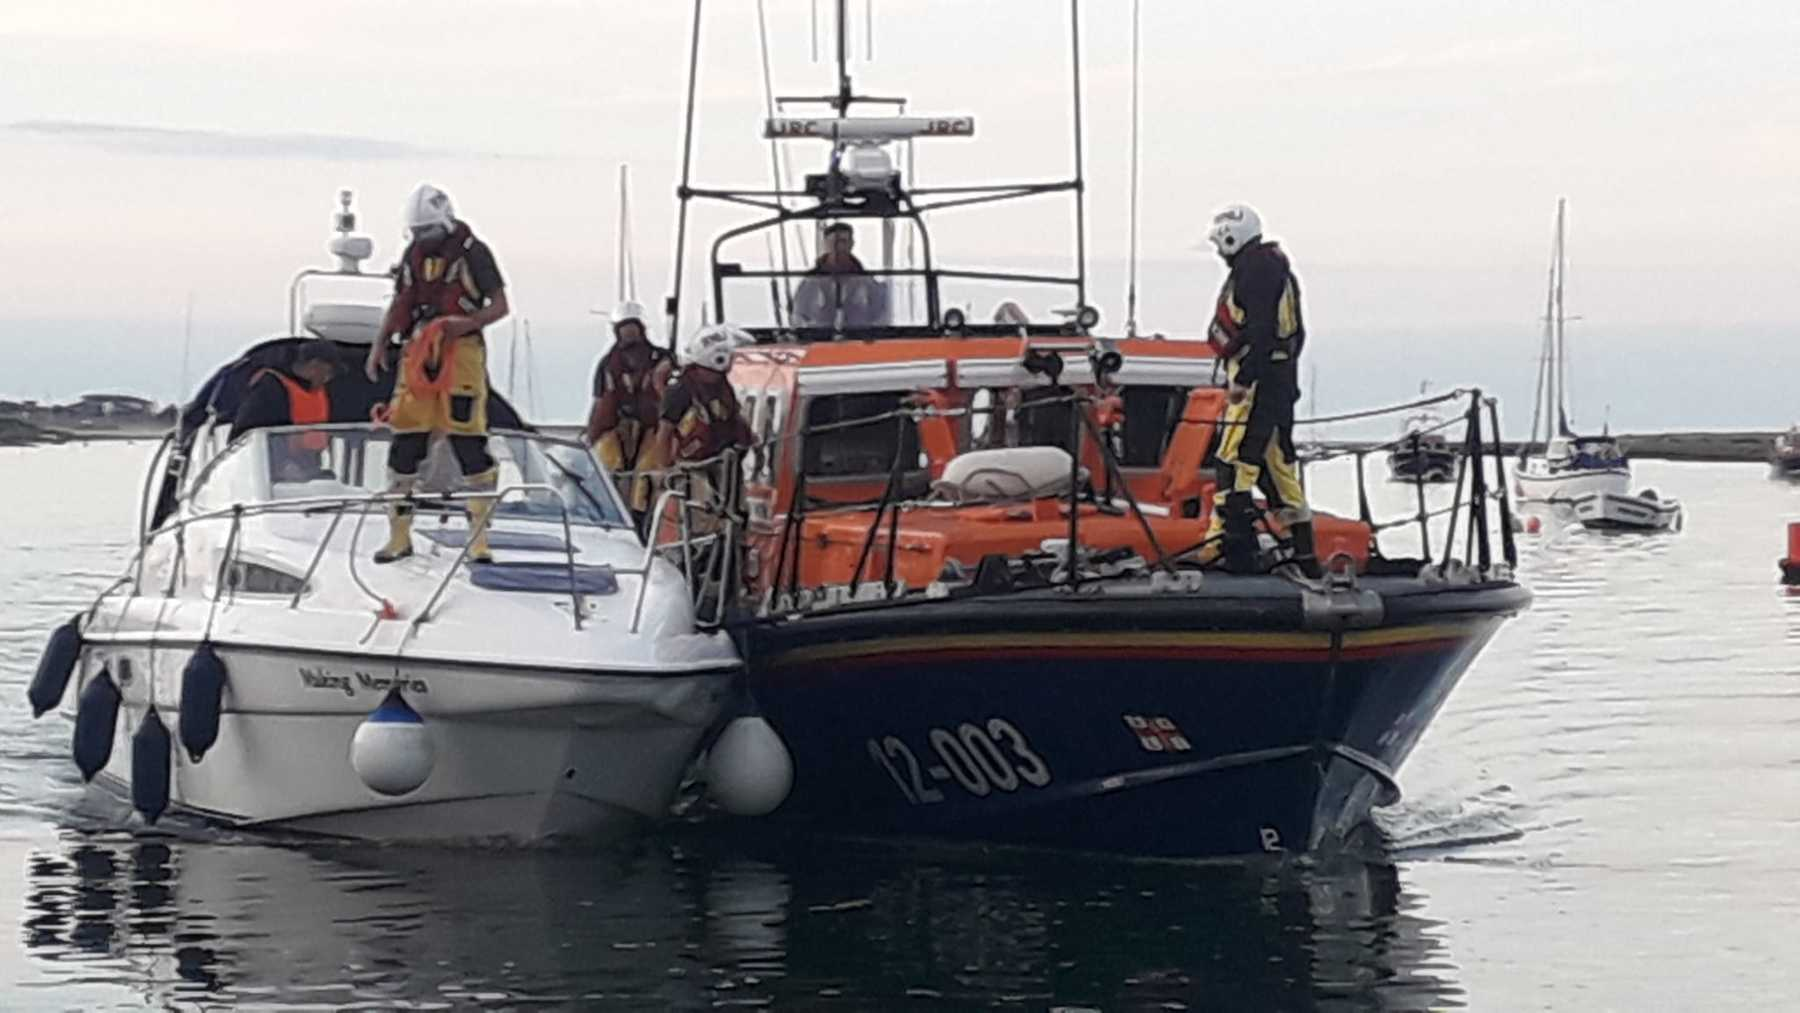 Lifeboat bringing 'Making Memories' up to the quay, 17/9/21